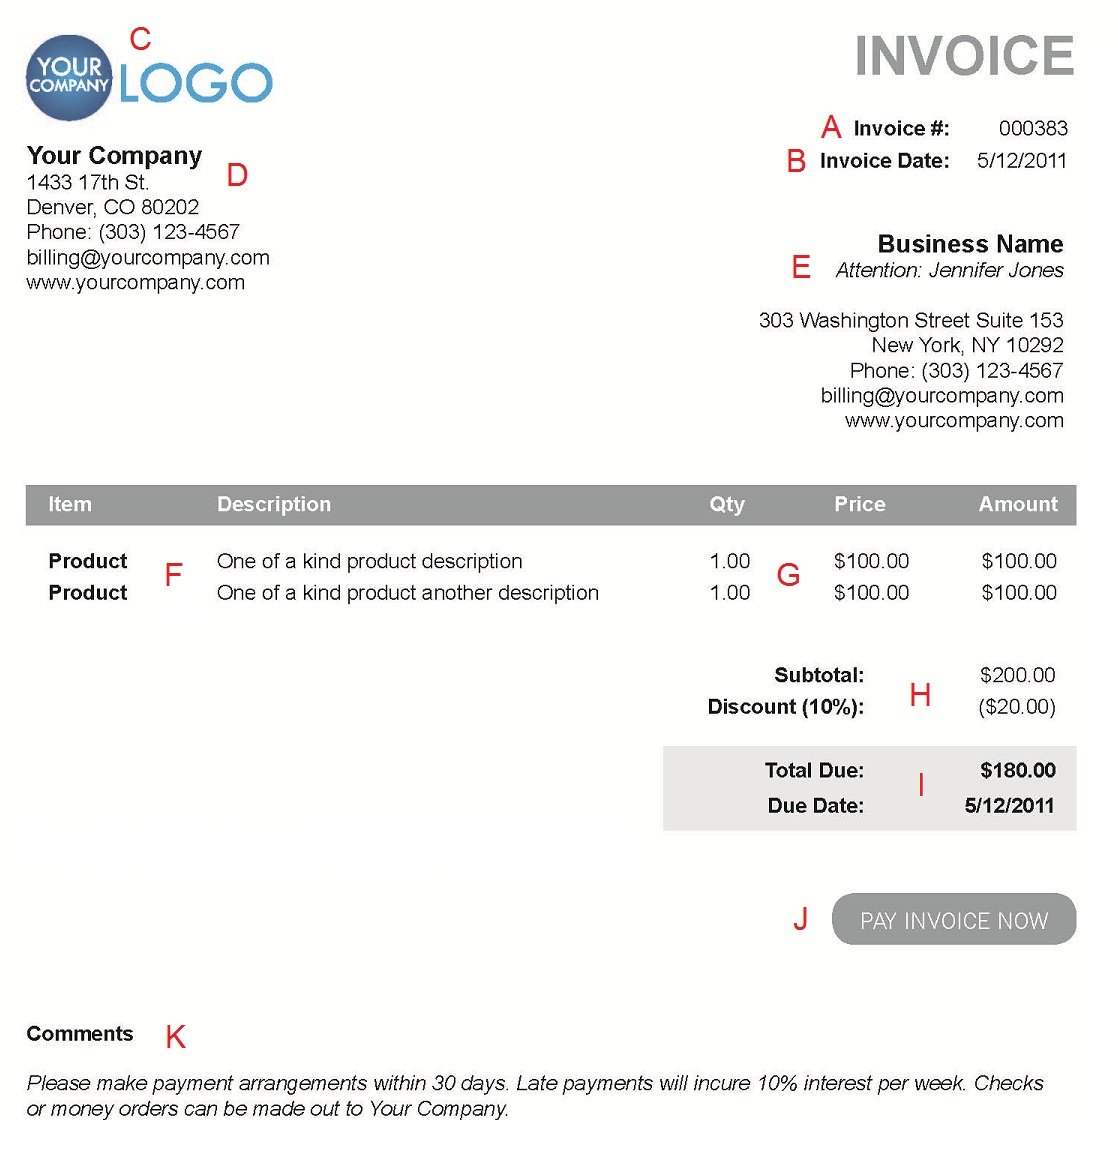 Maidofhonortoastus  Mesmerizing The  Different Sections Of An Electronic Payment Invoice With Handsome A  With Delightful Word Rent Receipt Template Also Quiche Receipt In Addition Send Read Receipt And Lil Wayne Receipt Mp As Well As Seattle Taxi Receipt Additionally Cheap Receipt Paper From Paysimplecom With Maidofhonortoastus  Handsome The  Different Sections Of An Electronic Payment Invoice With Delightful A  And Mesmerizing Word Rent Receipt Template Also Quiche Receipt In Addition Send Read Receipt From Paysimplecom